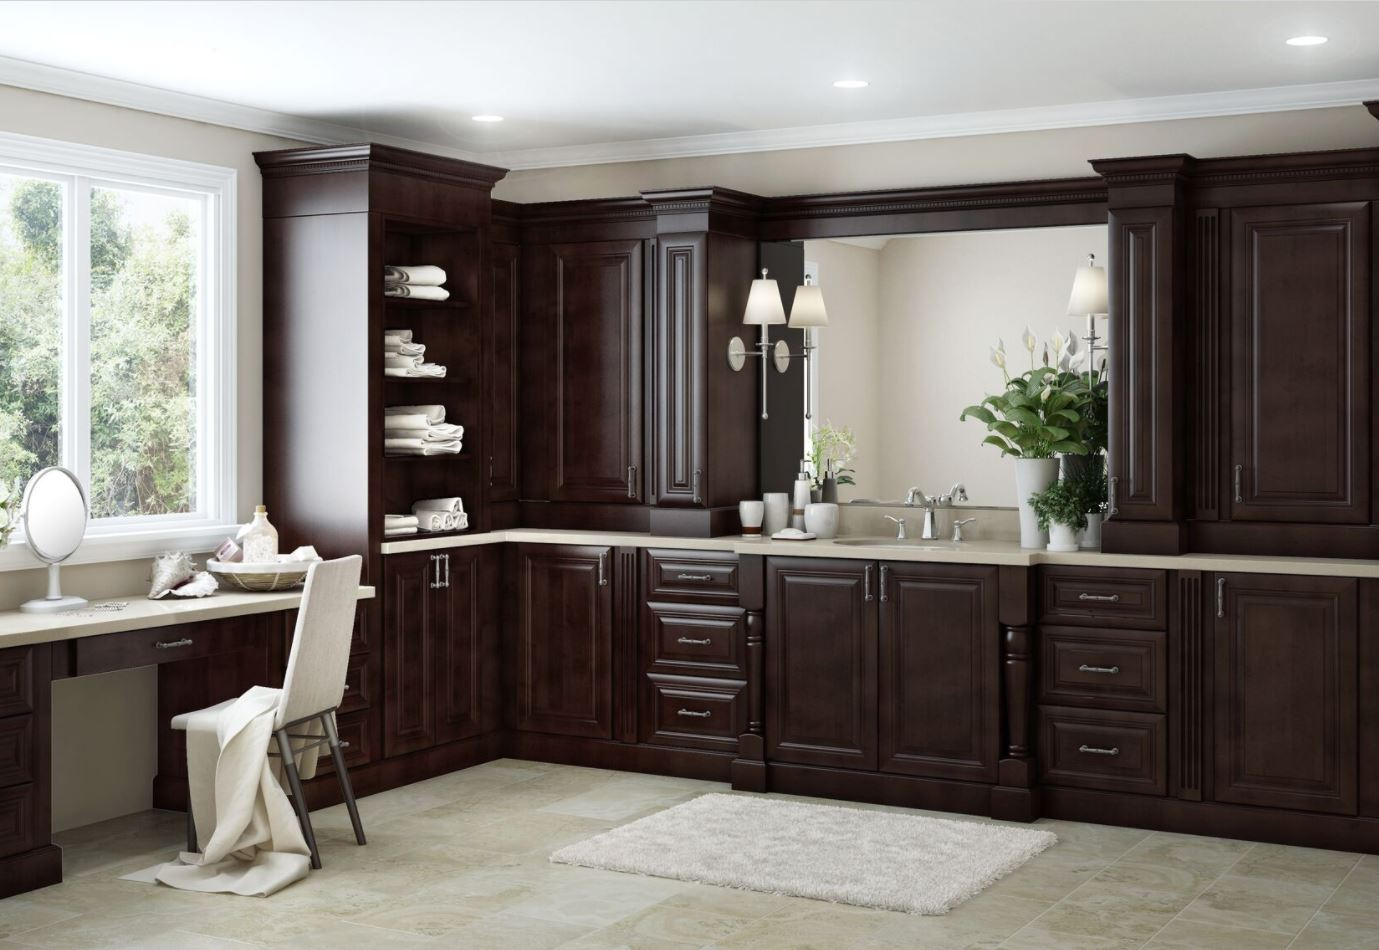 roxbury pantry cabinets in manganite - kitchen - the home